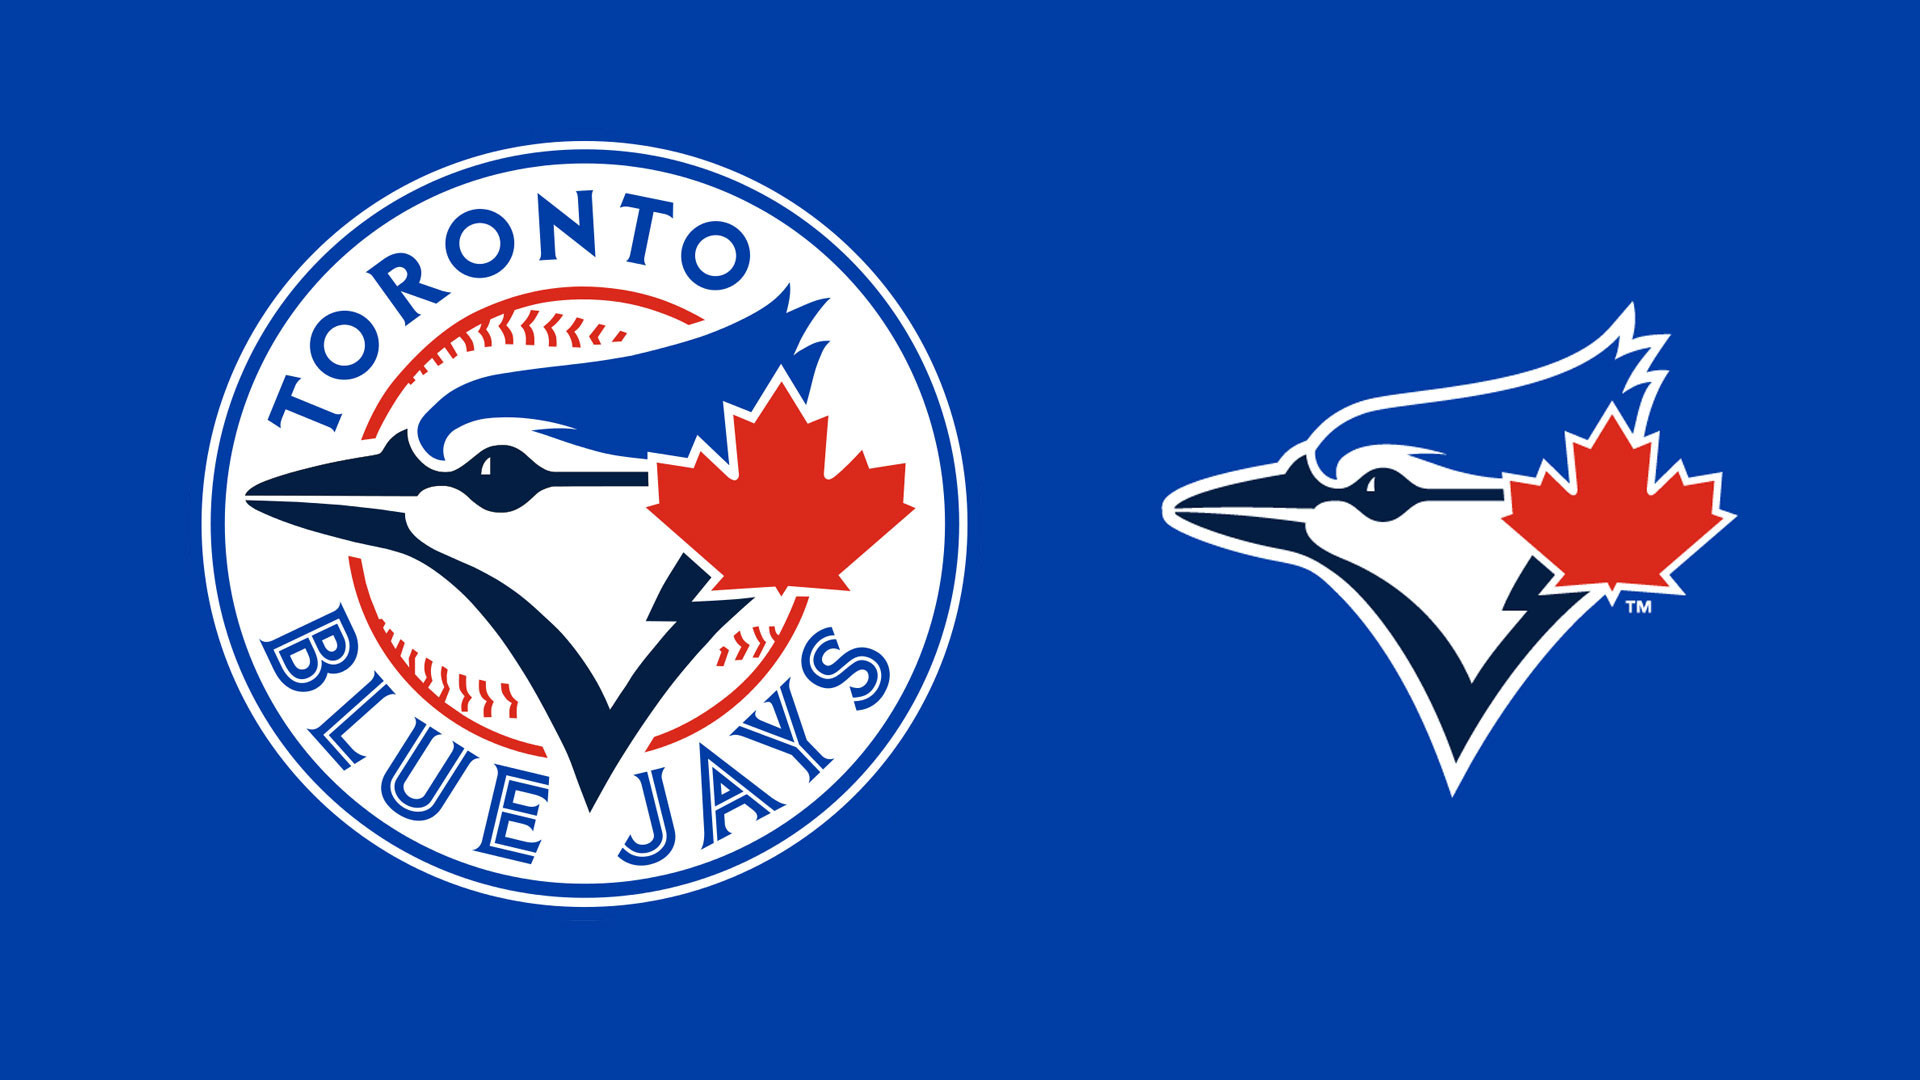 1920x1080 Mlb Team Wallpapers Luxury Mlb toronto Blue Jays Team Logo Wallpaper 2018  In Baseball